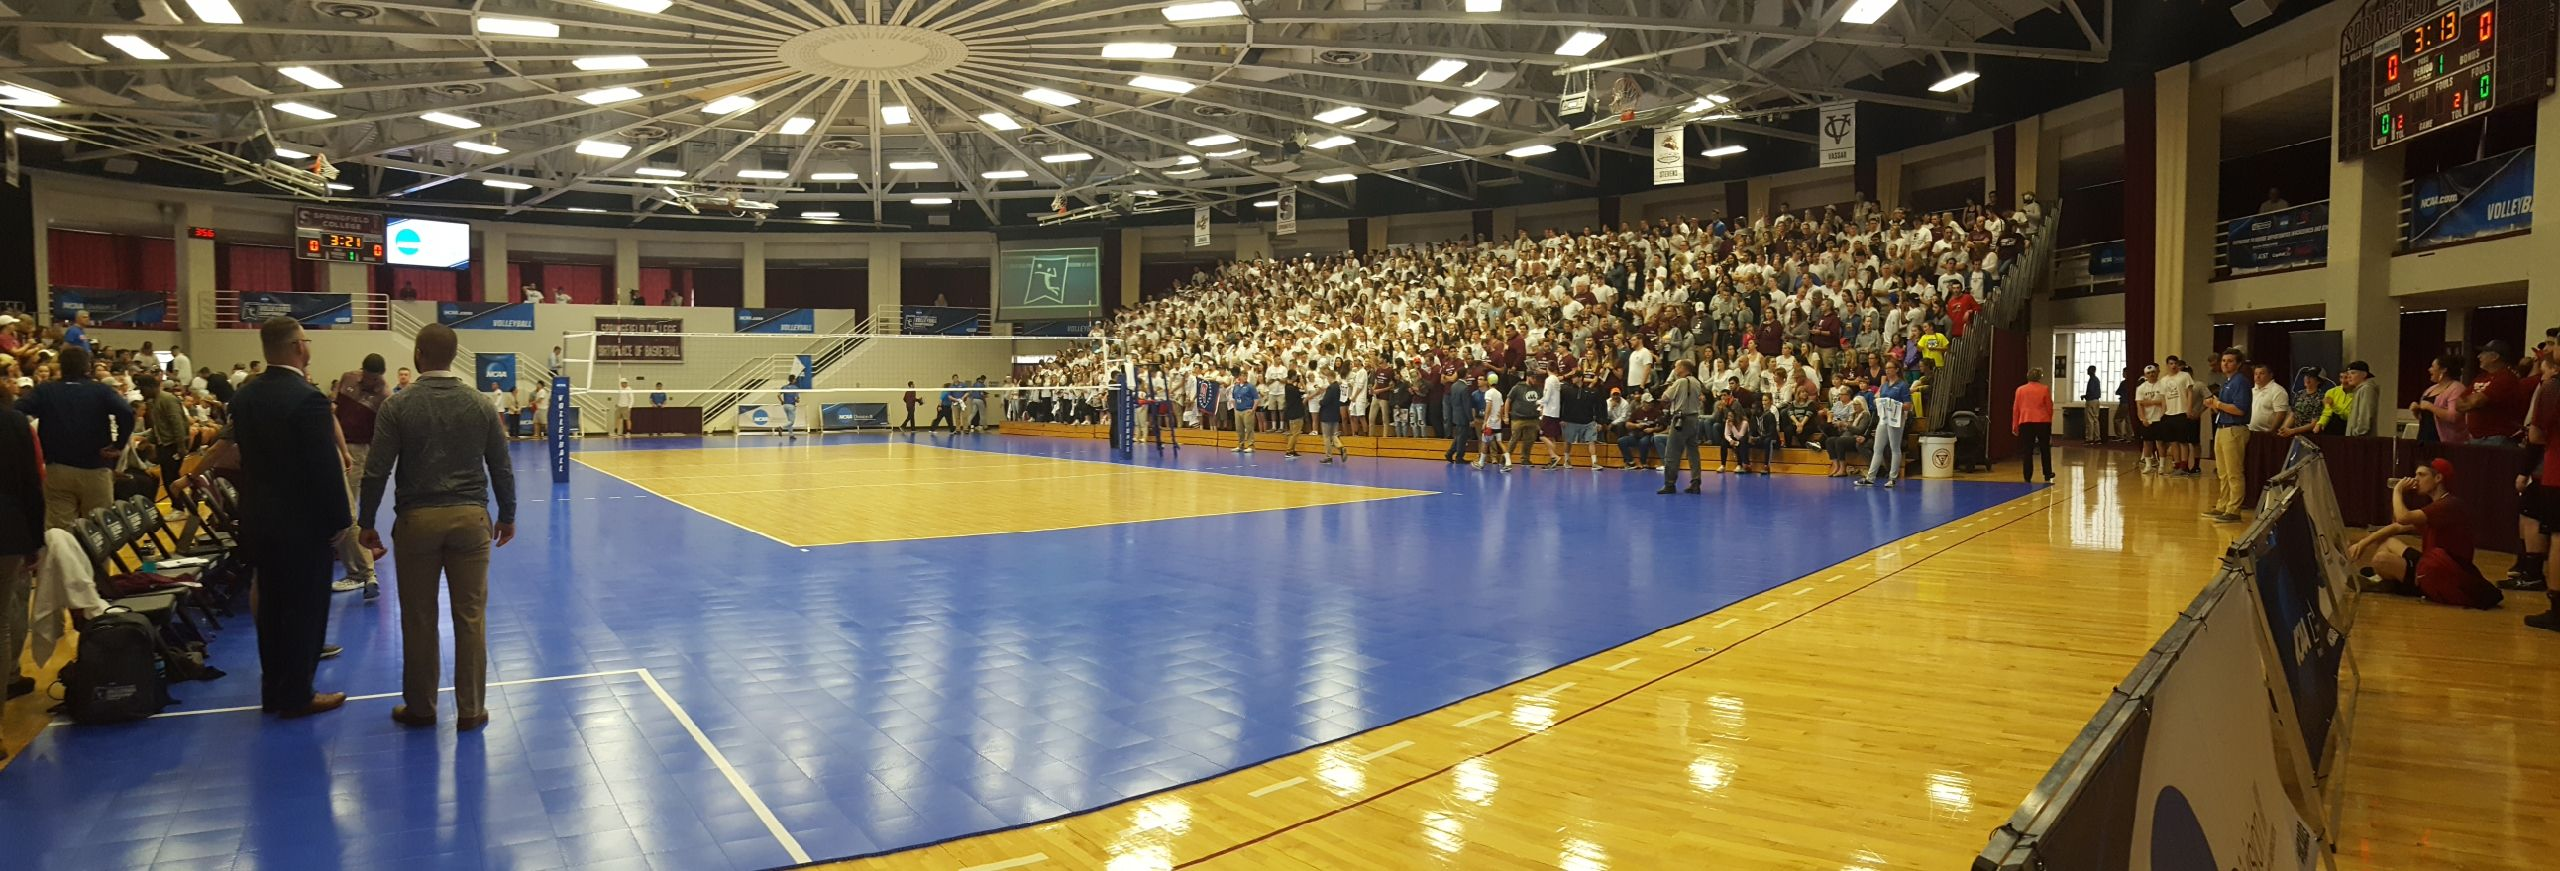 Ncaa Division Iii Men S Volleyball Championships Volleyball Net Volleyball Mens Volleyball